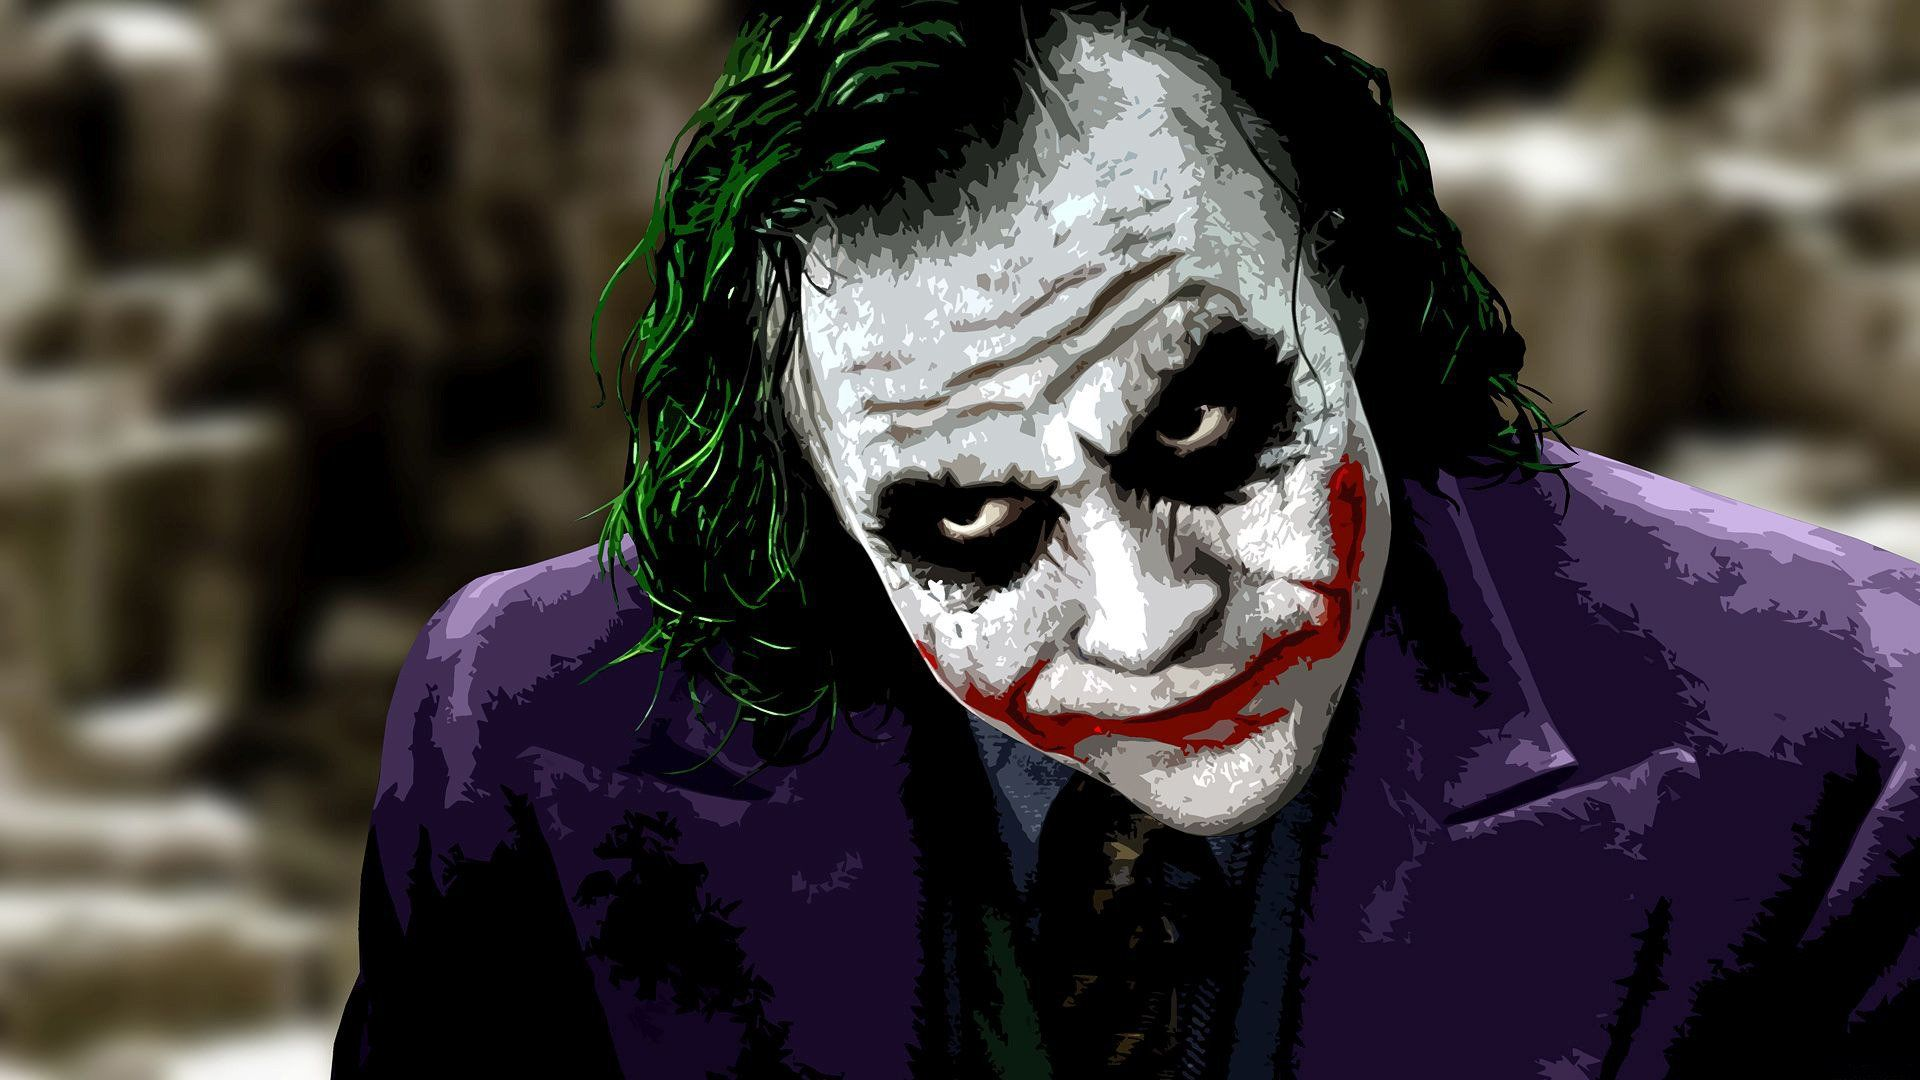 Batman the joker batman the dark knight hd wallpaper 1920 for Joker immagini hd